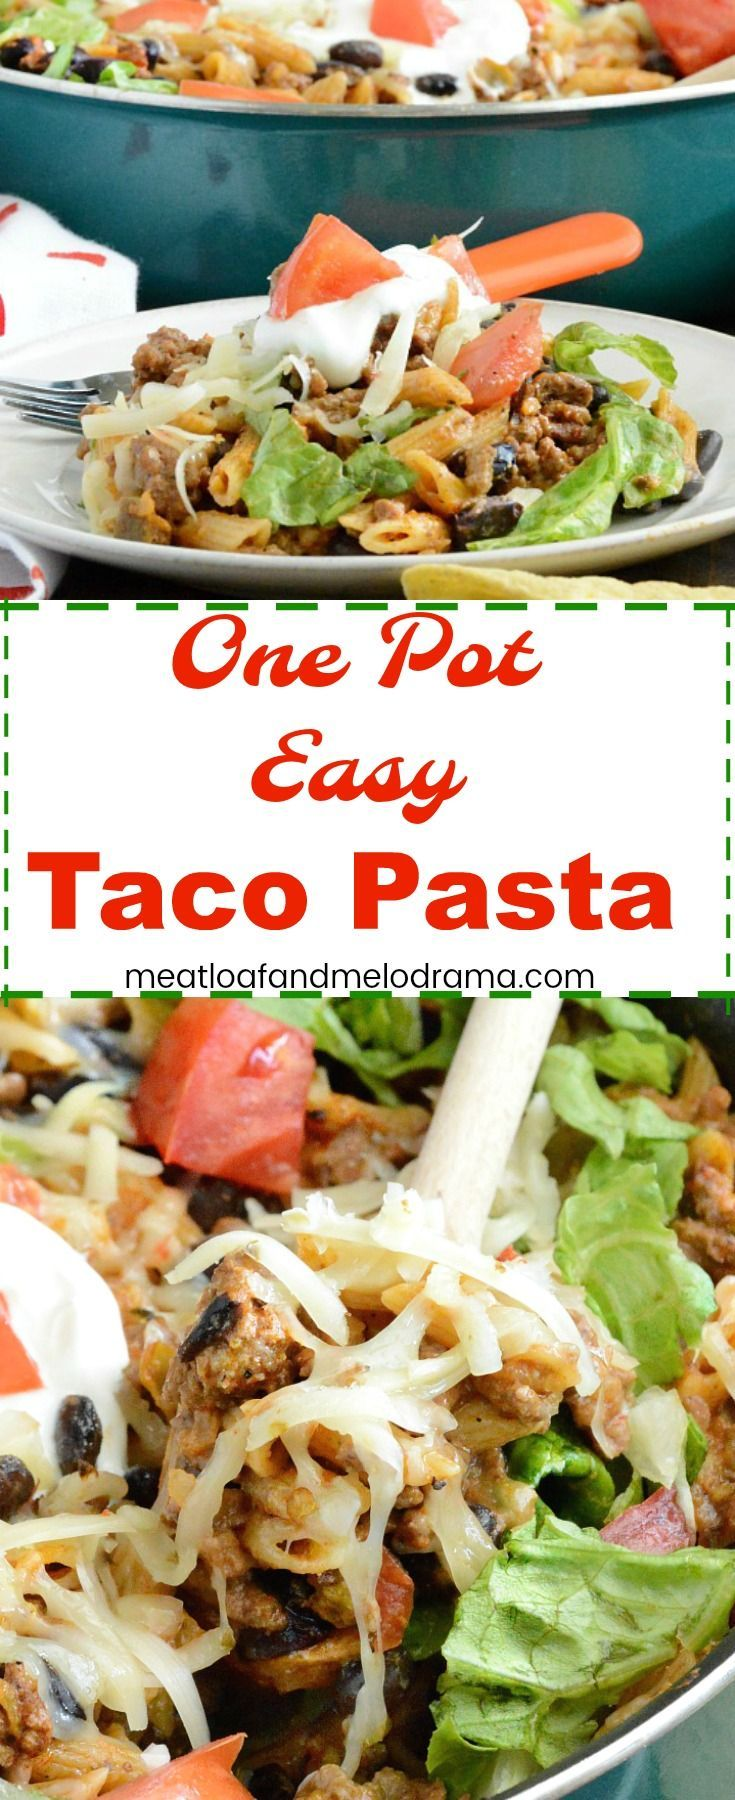 One Pot Easy Taco Pasta - A quick and easy 30 minute dinner that the whole family will love! from Meatloaf and Melodrama